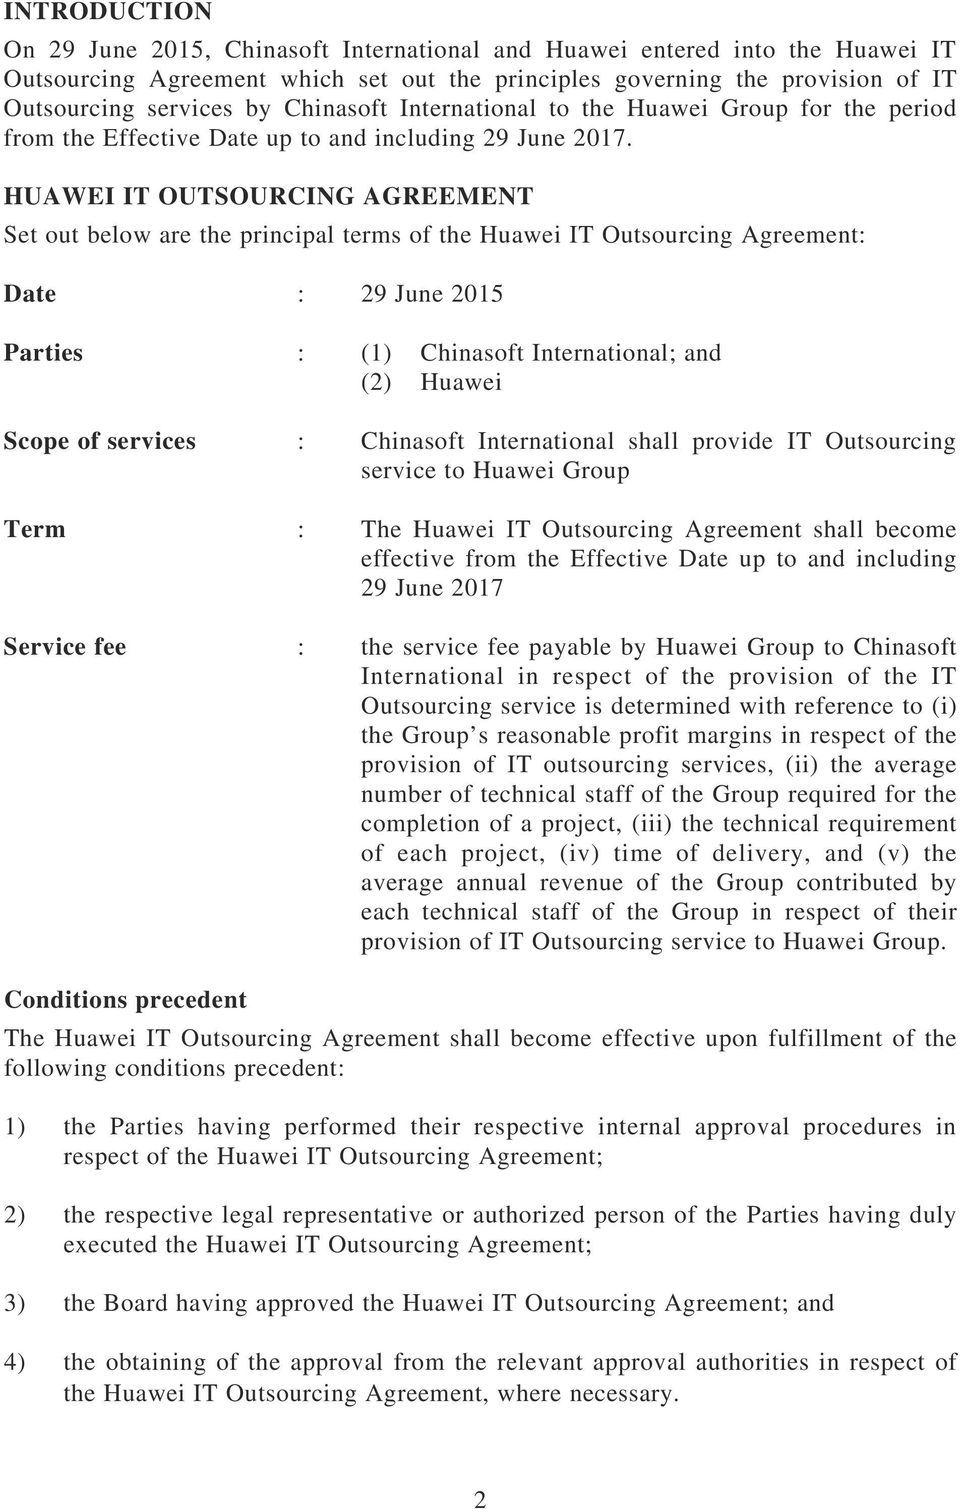 HUAWEI IT OUTSOURCING AGREEMENT Set out below are the principal terms of the Huawei IT Outsourcing Agreement: Date : 29 June 2015 Parties : (1) Chinasoft International; and (2) Huawei Scope of